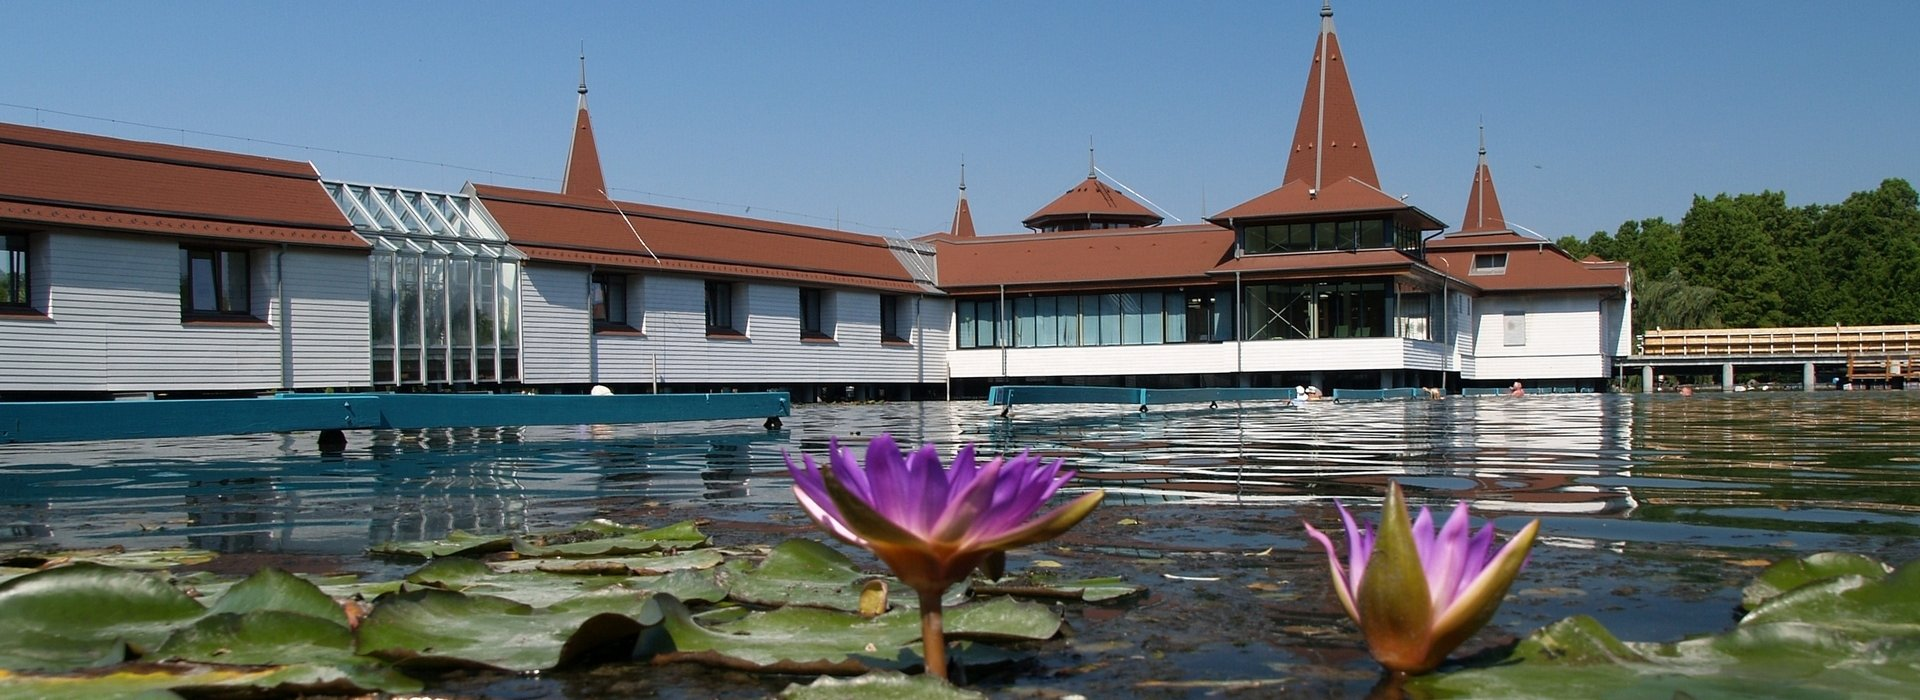 Napfényfürdő Aquapolis Szeged Wellness, Medicinal and Adventure Bath Complex